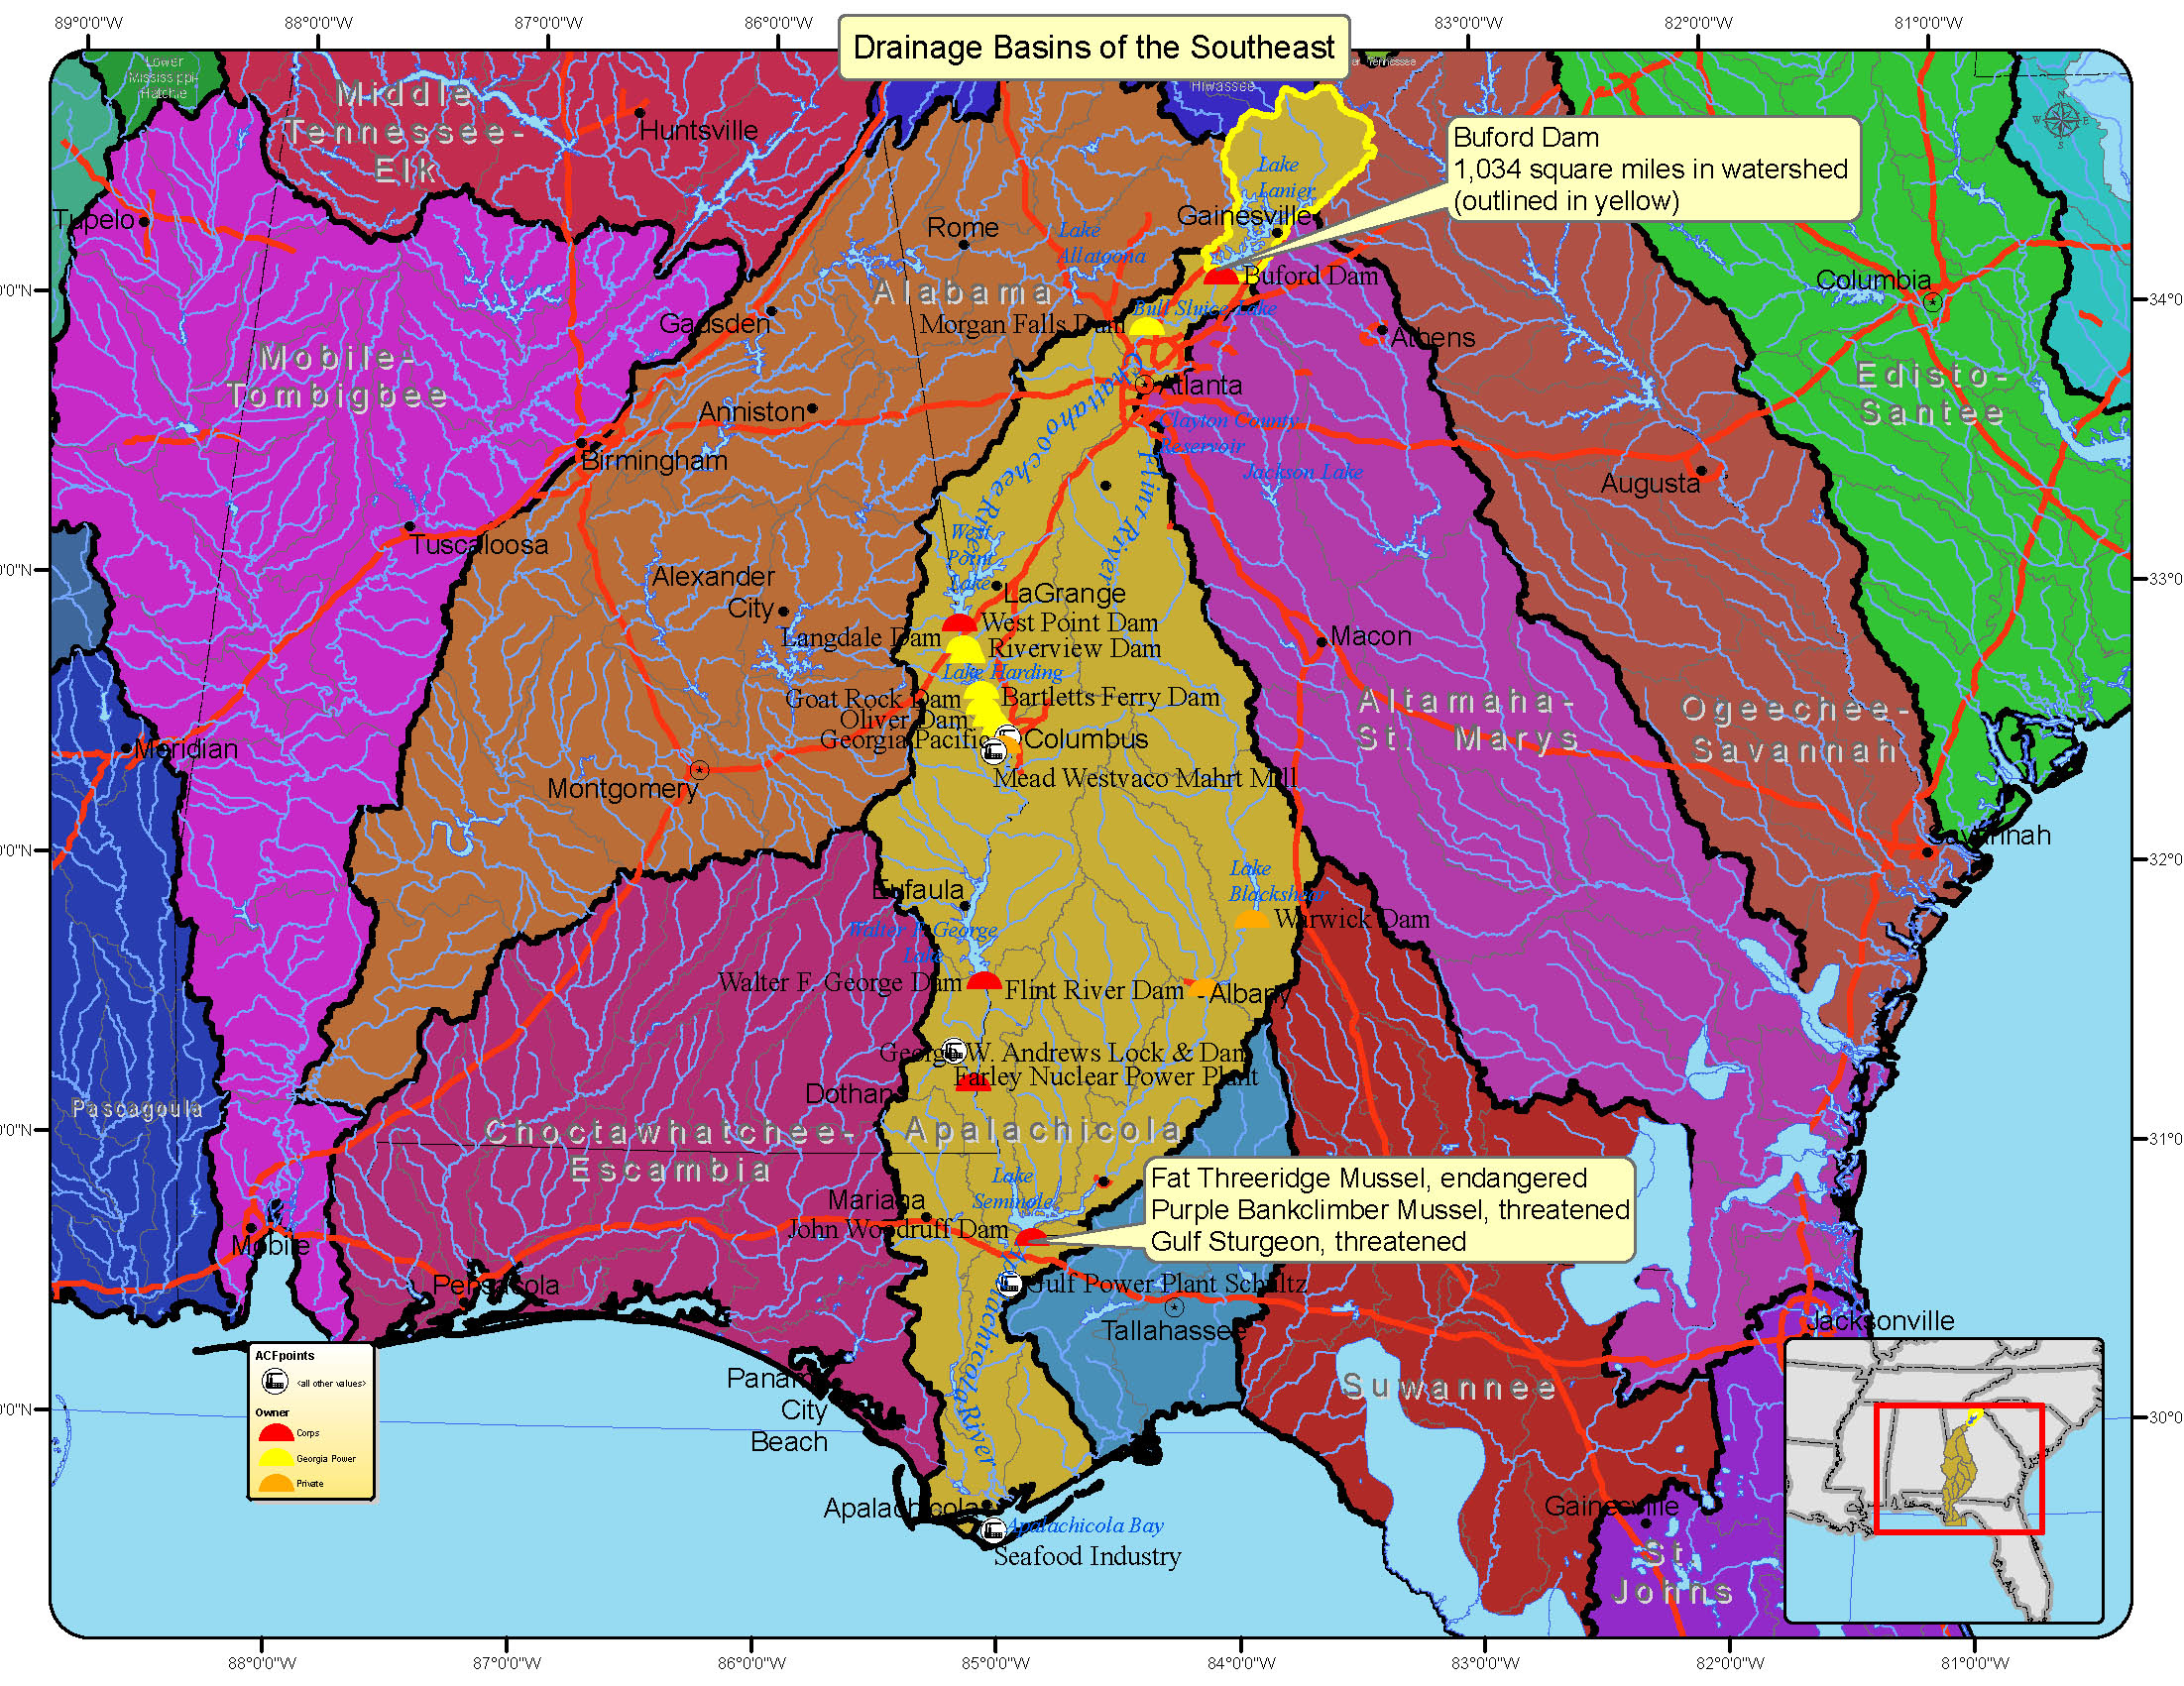 Drainage Basins Of Southeast United States Map Mappery - Us drainage basins map